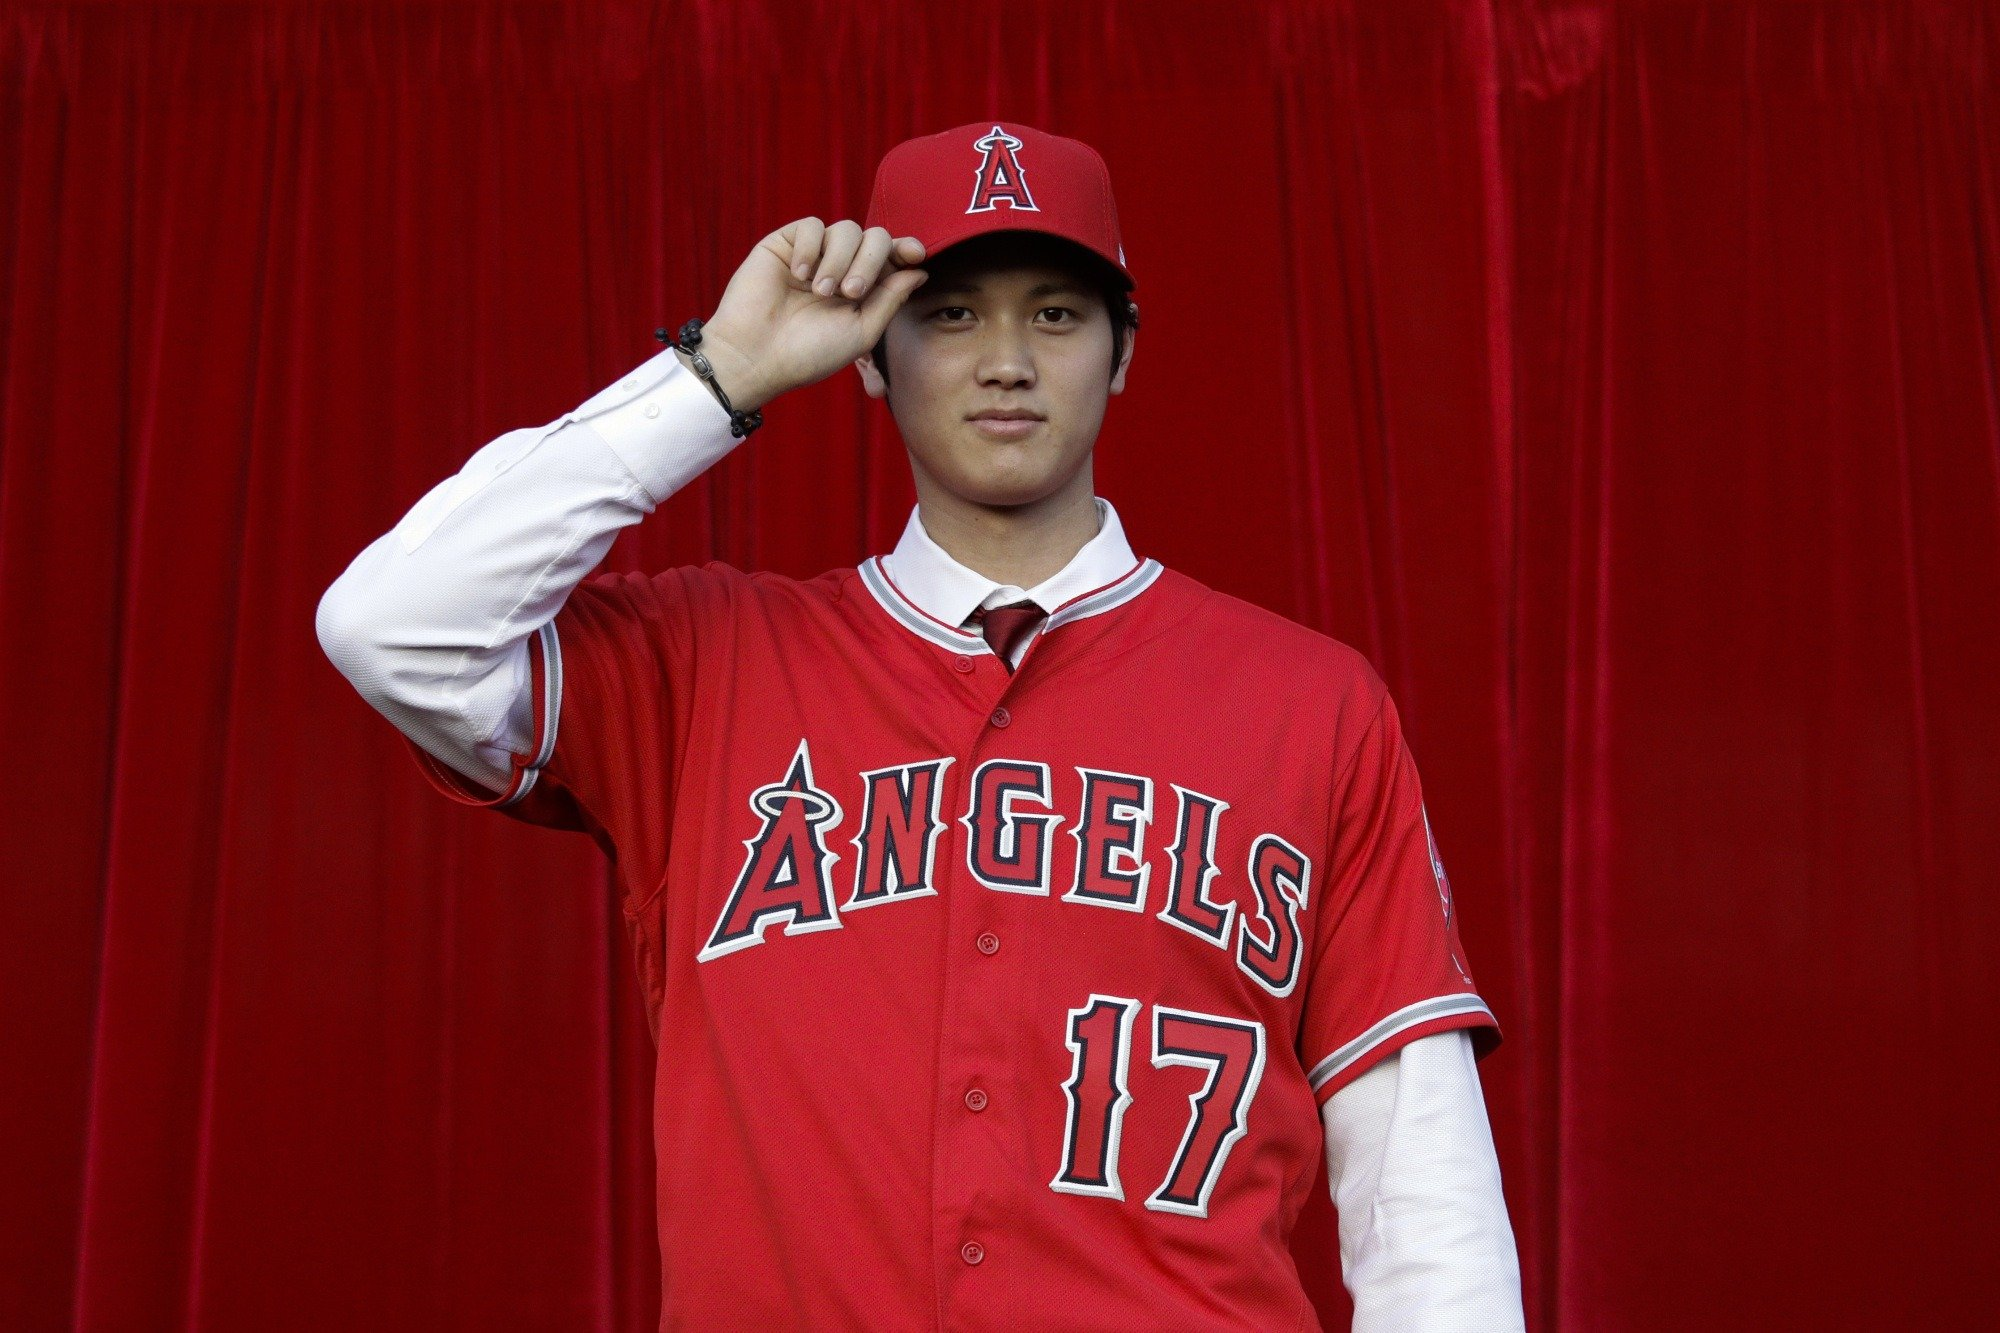 Shohei Ohtani World Series odds